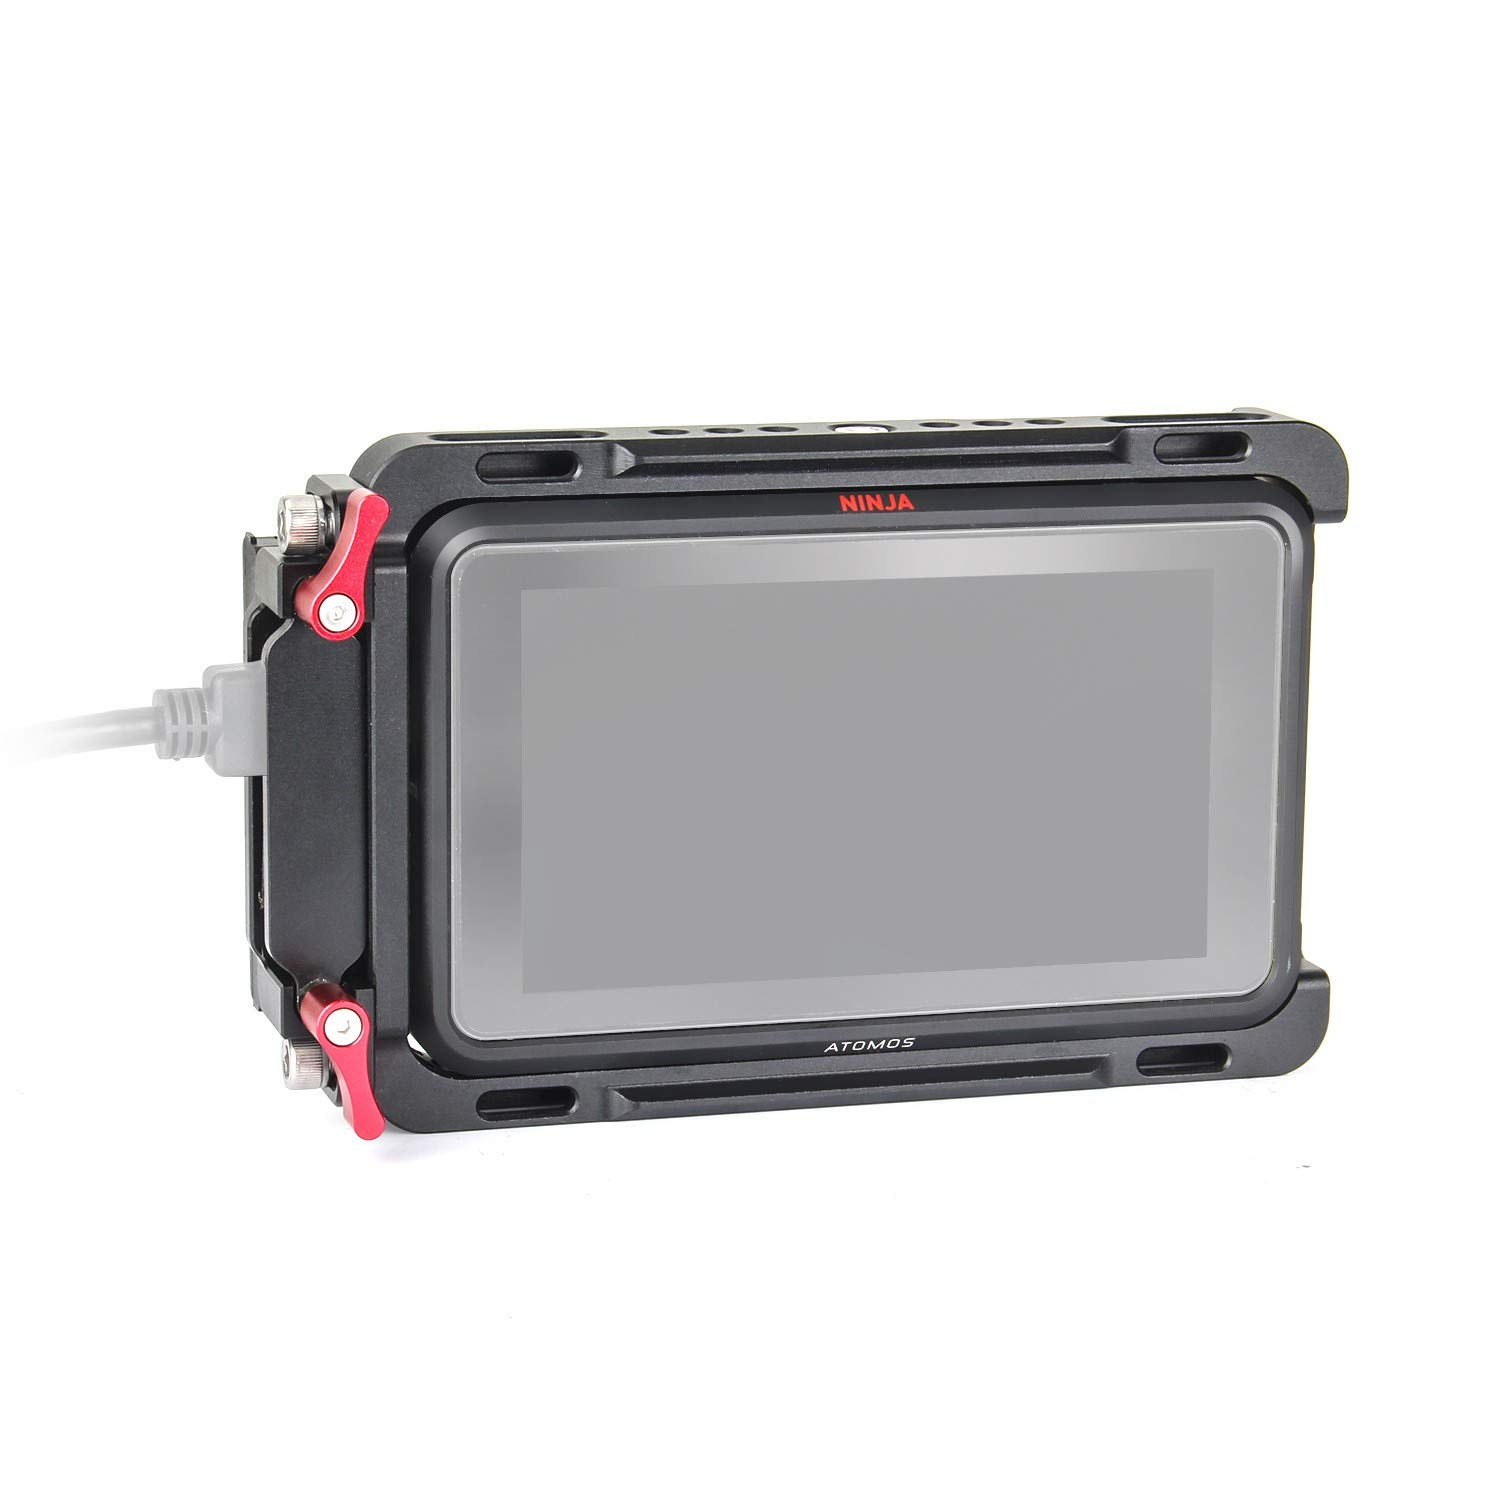 EachRig Monitor Cage, with Built-in NATO Rail and Extra HDMI Cable Clamp for Atomos Monitor Ninja V